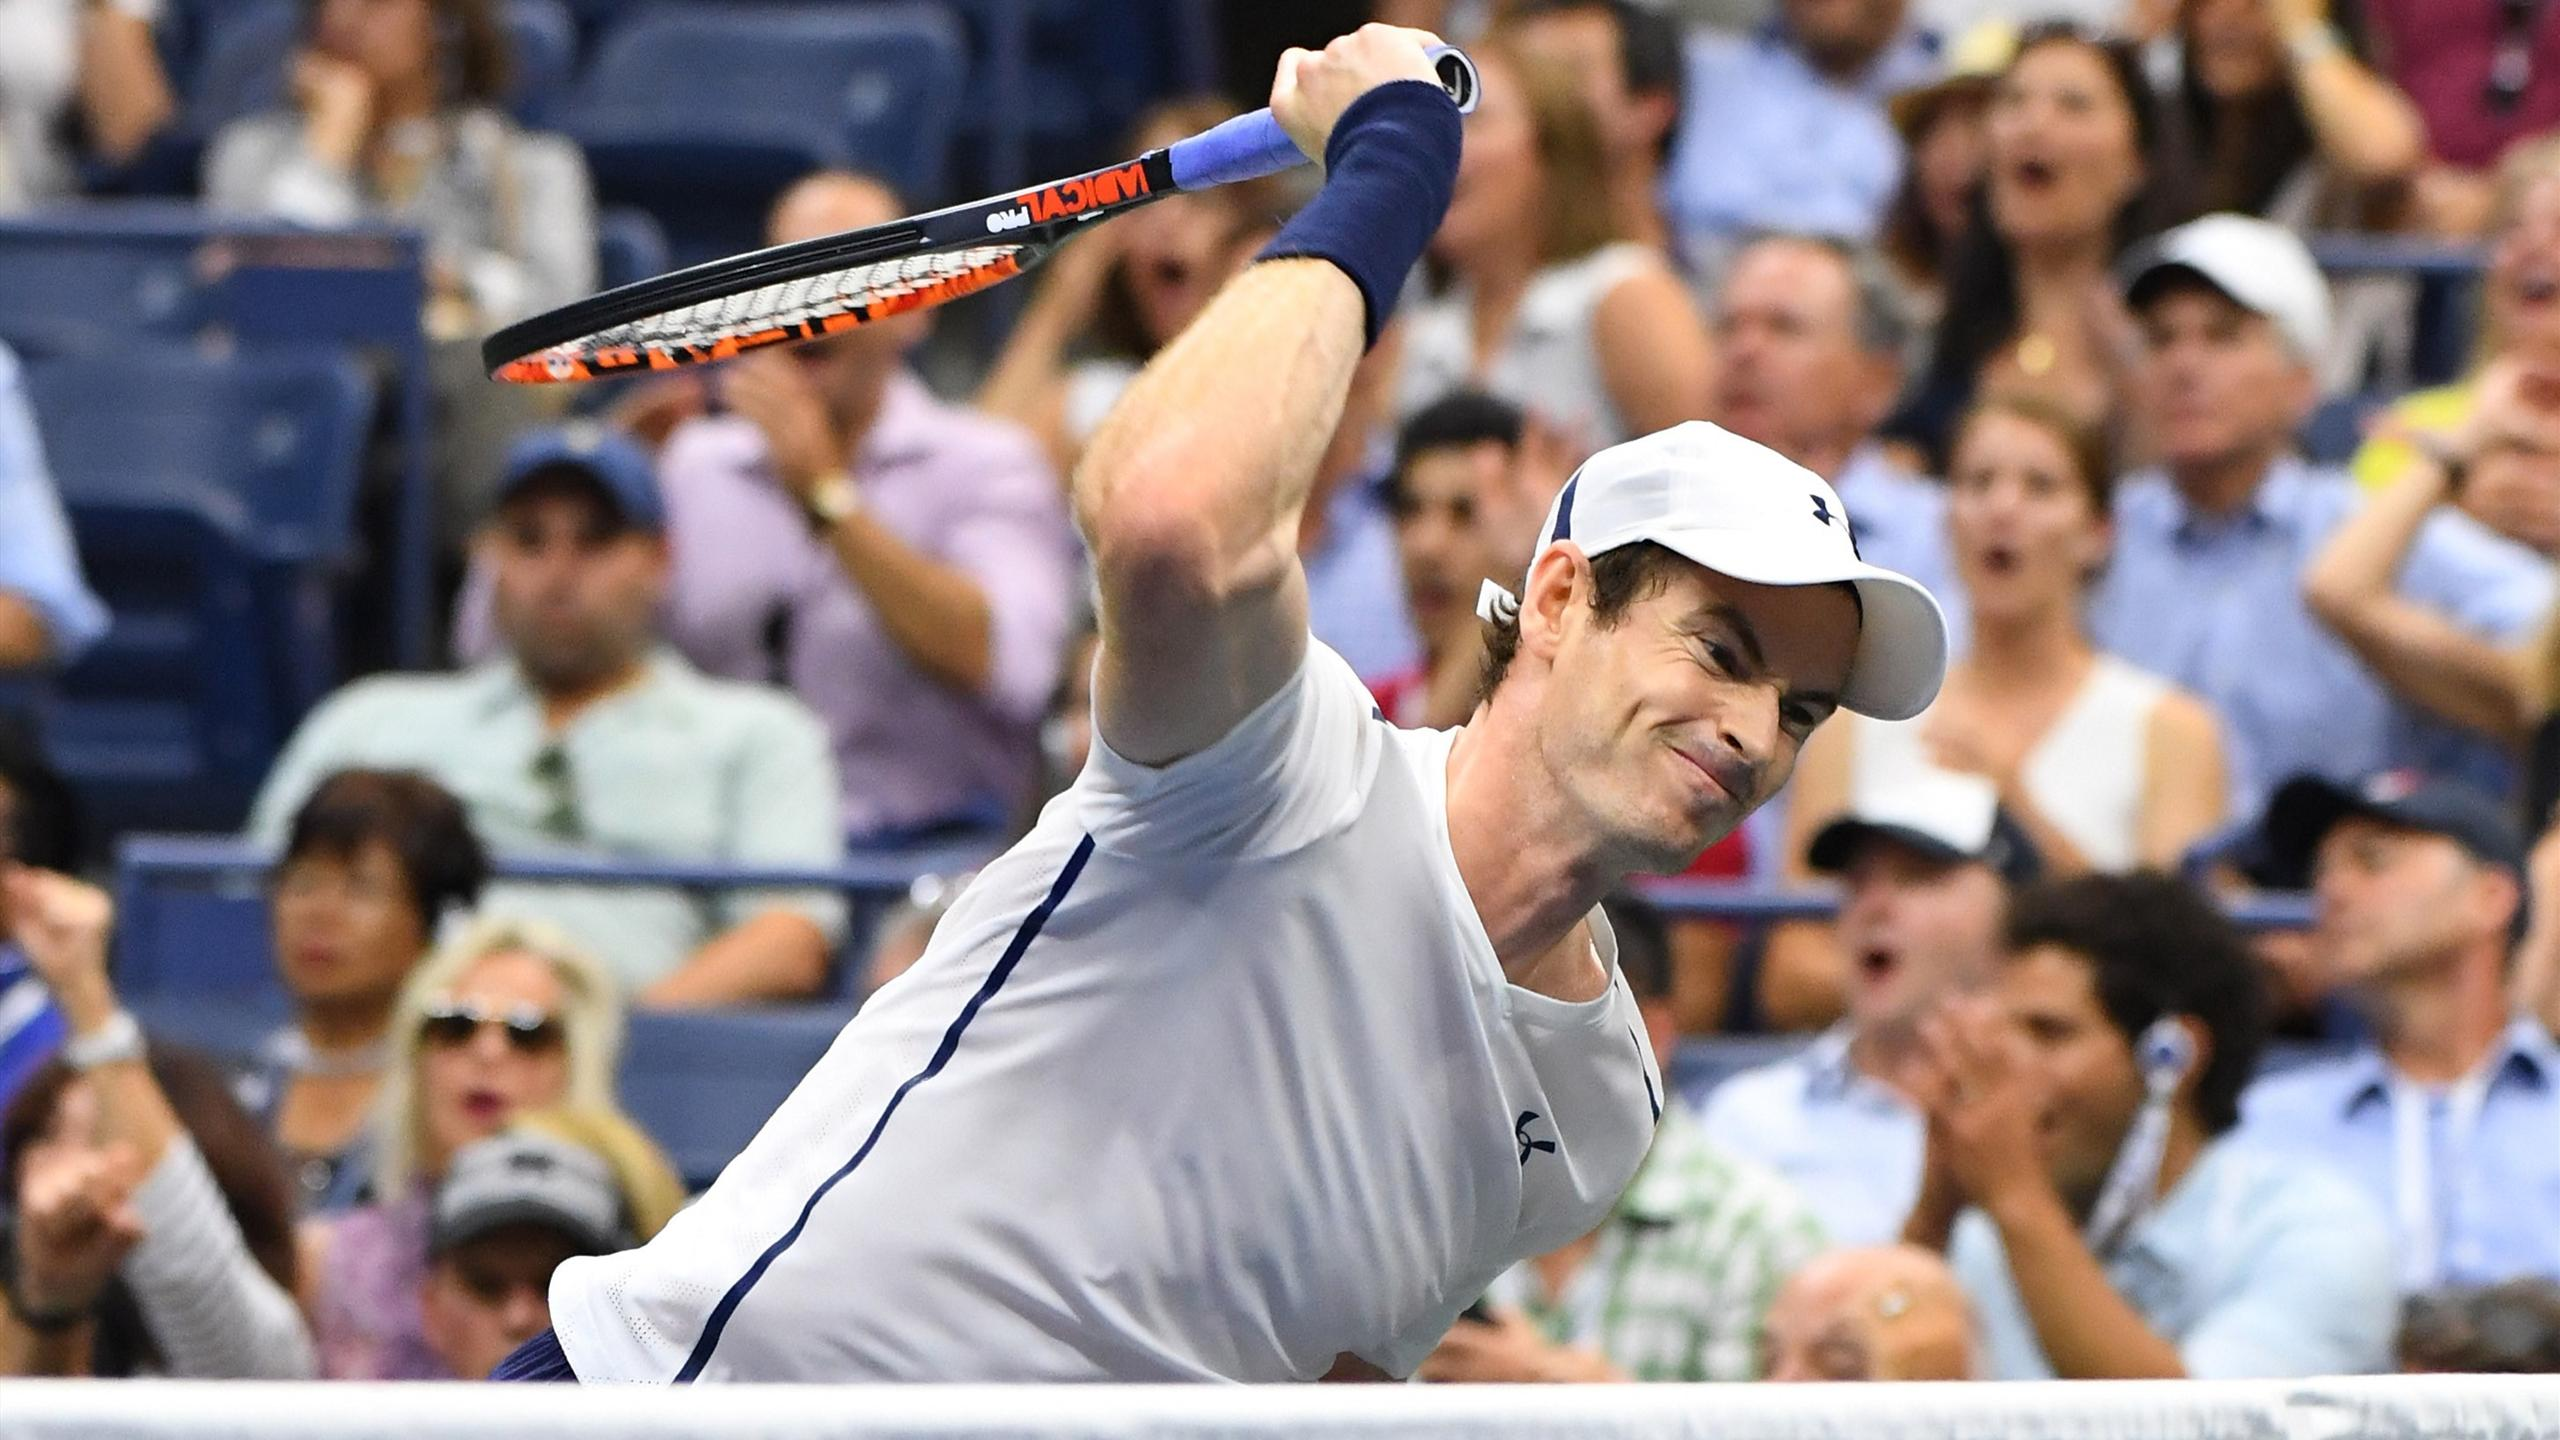 Andy Murray of Great Britain reacts to being broken in the 5th set while playing Kei Nishikori